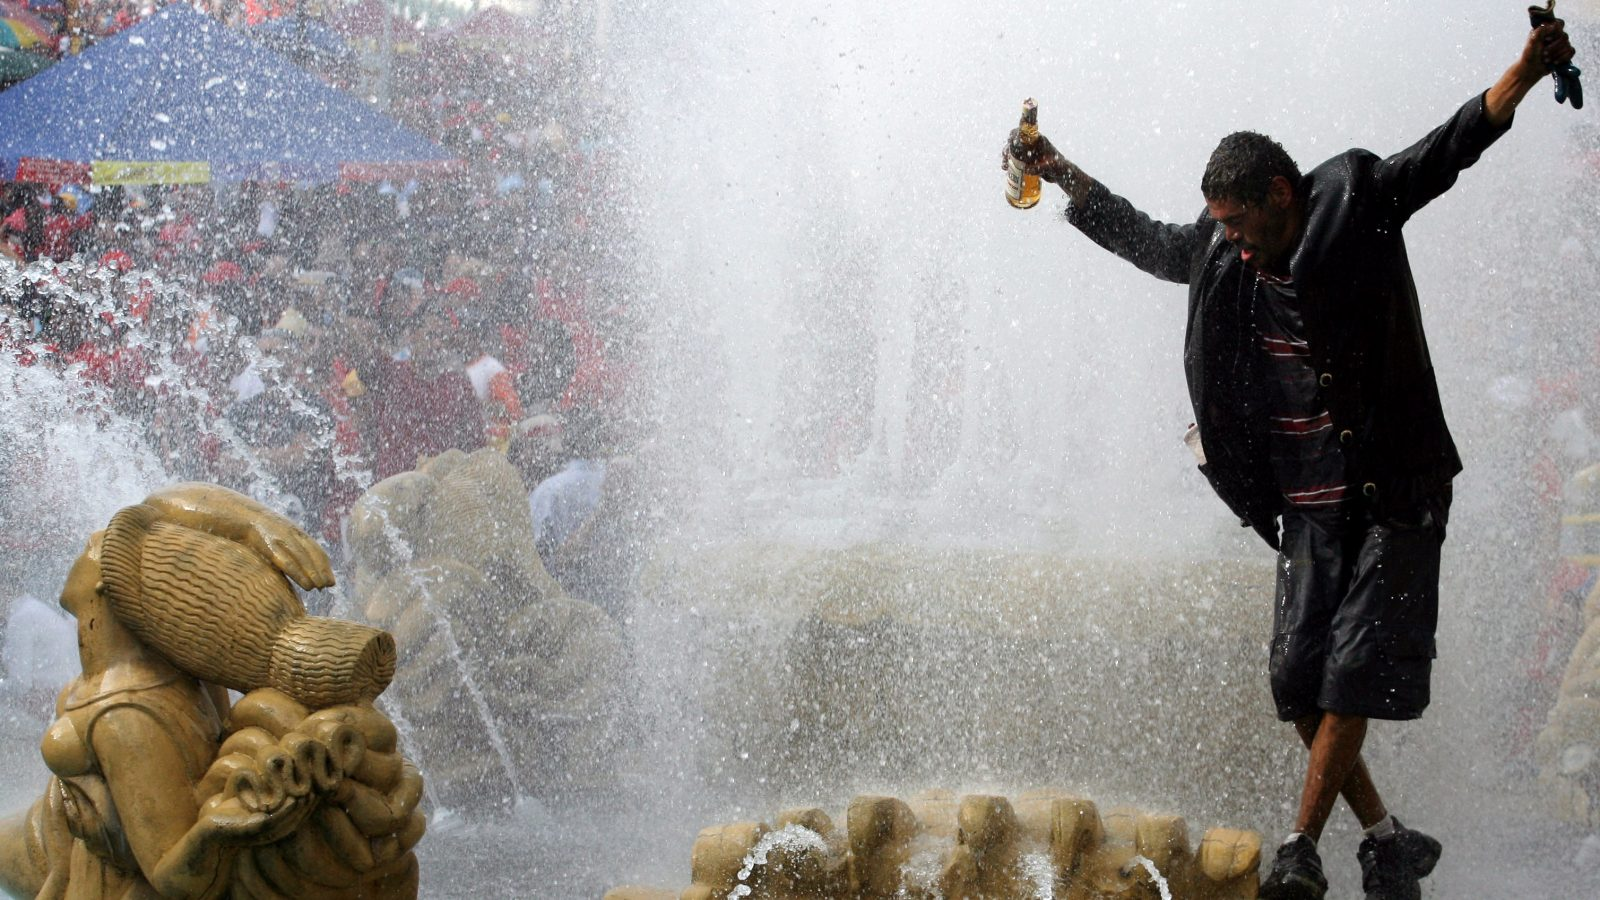 A man drinks in a fountain.